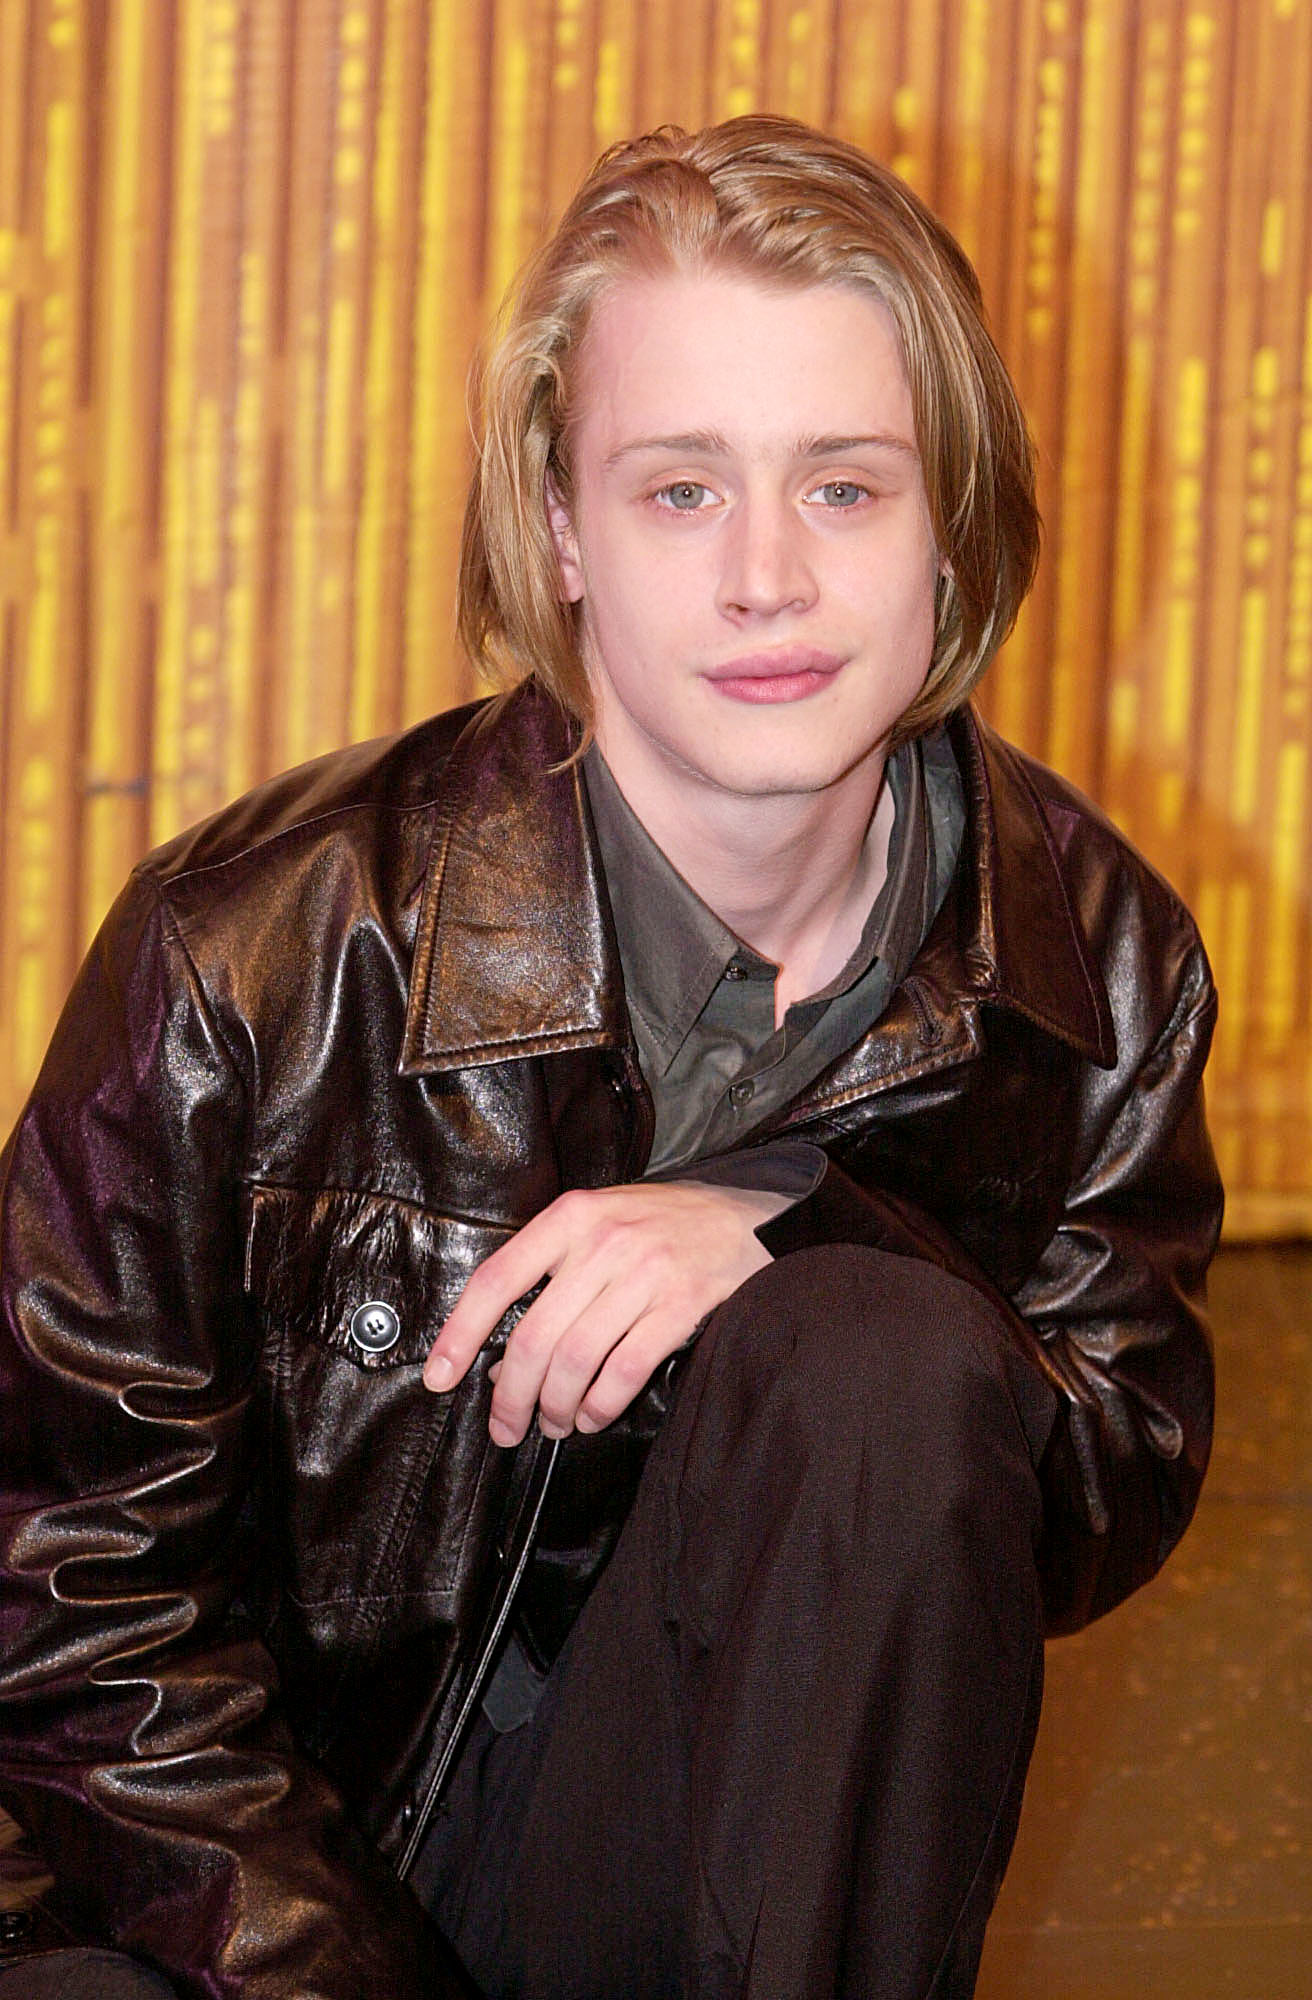 Macaulay Culkin - Macaulay Culkin Photo (33099871) - Fanpop